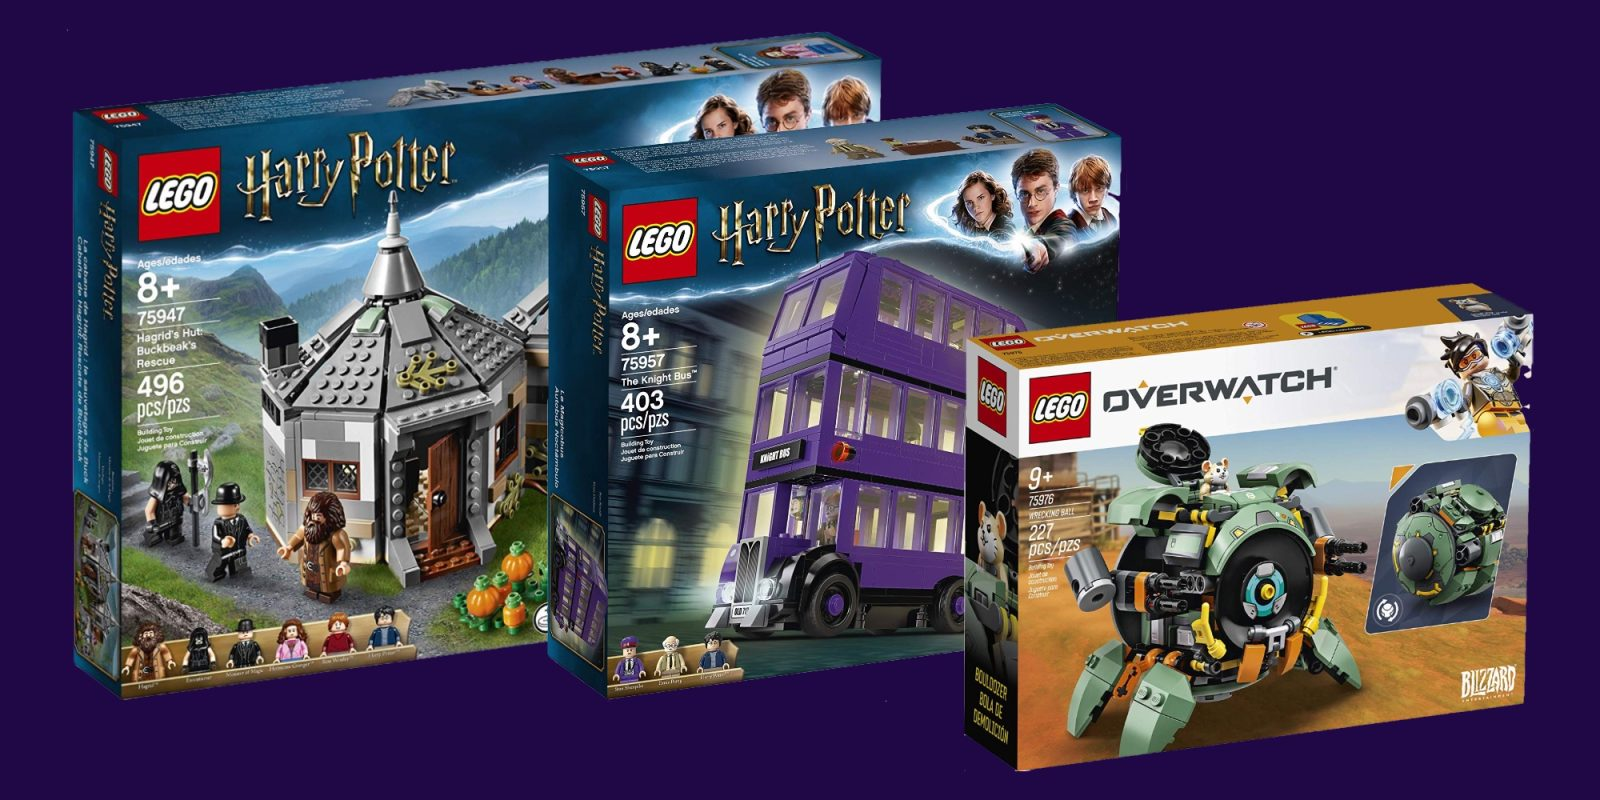 LEGO's latest Harry Potter kits are 20% off + Creator, Overwatch, more from $7